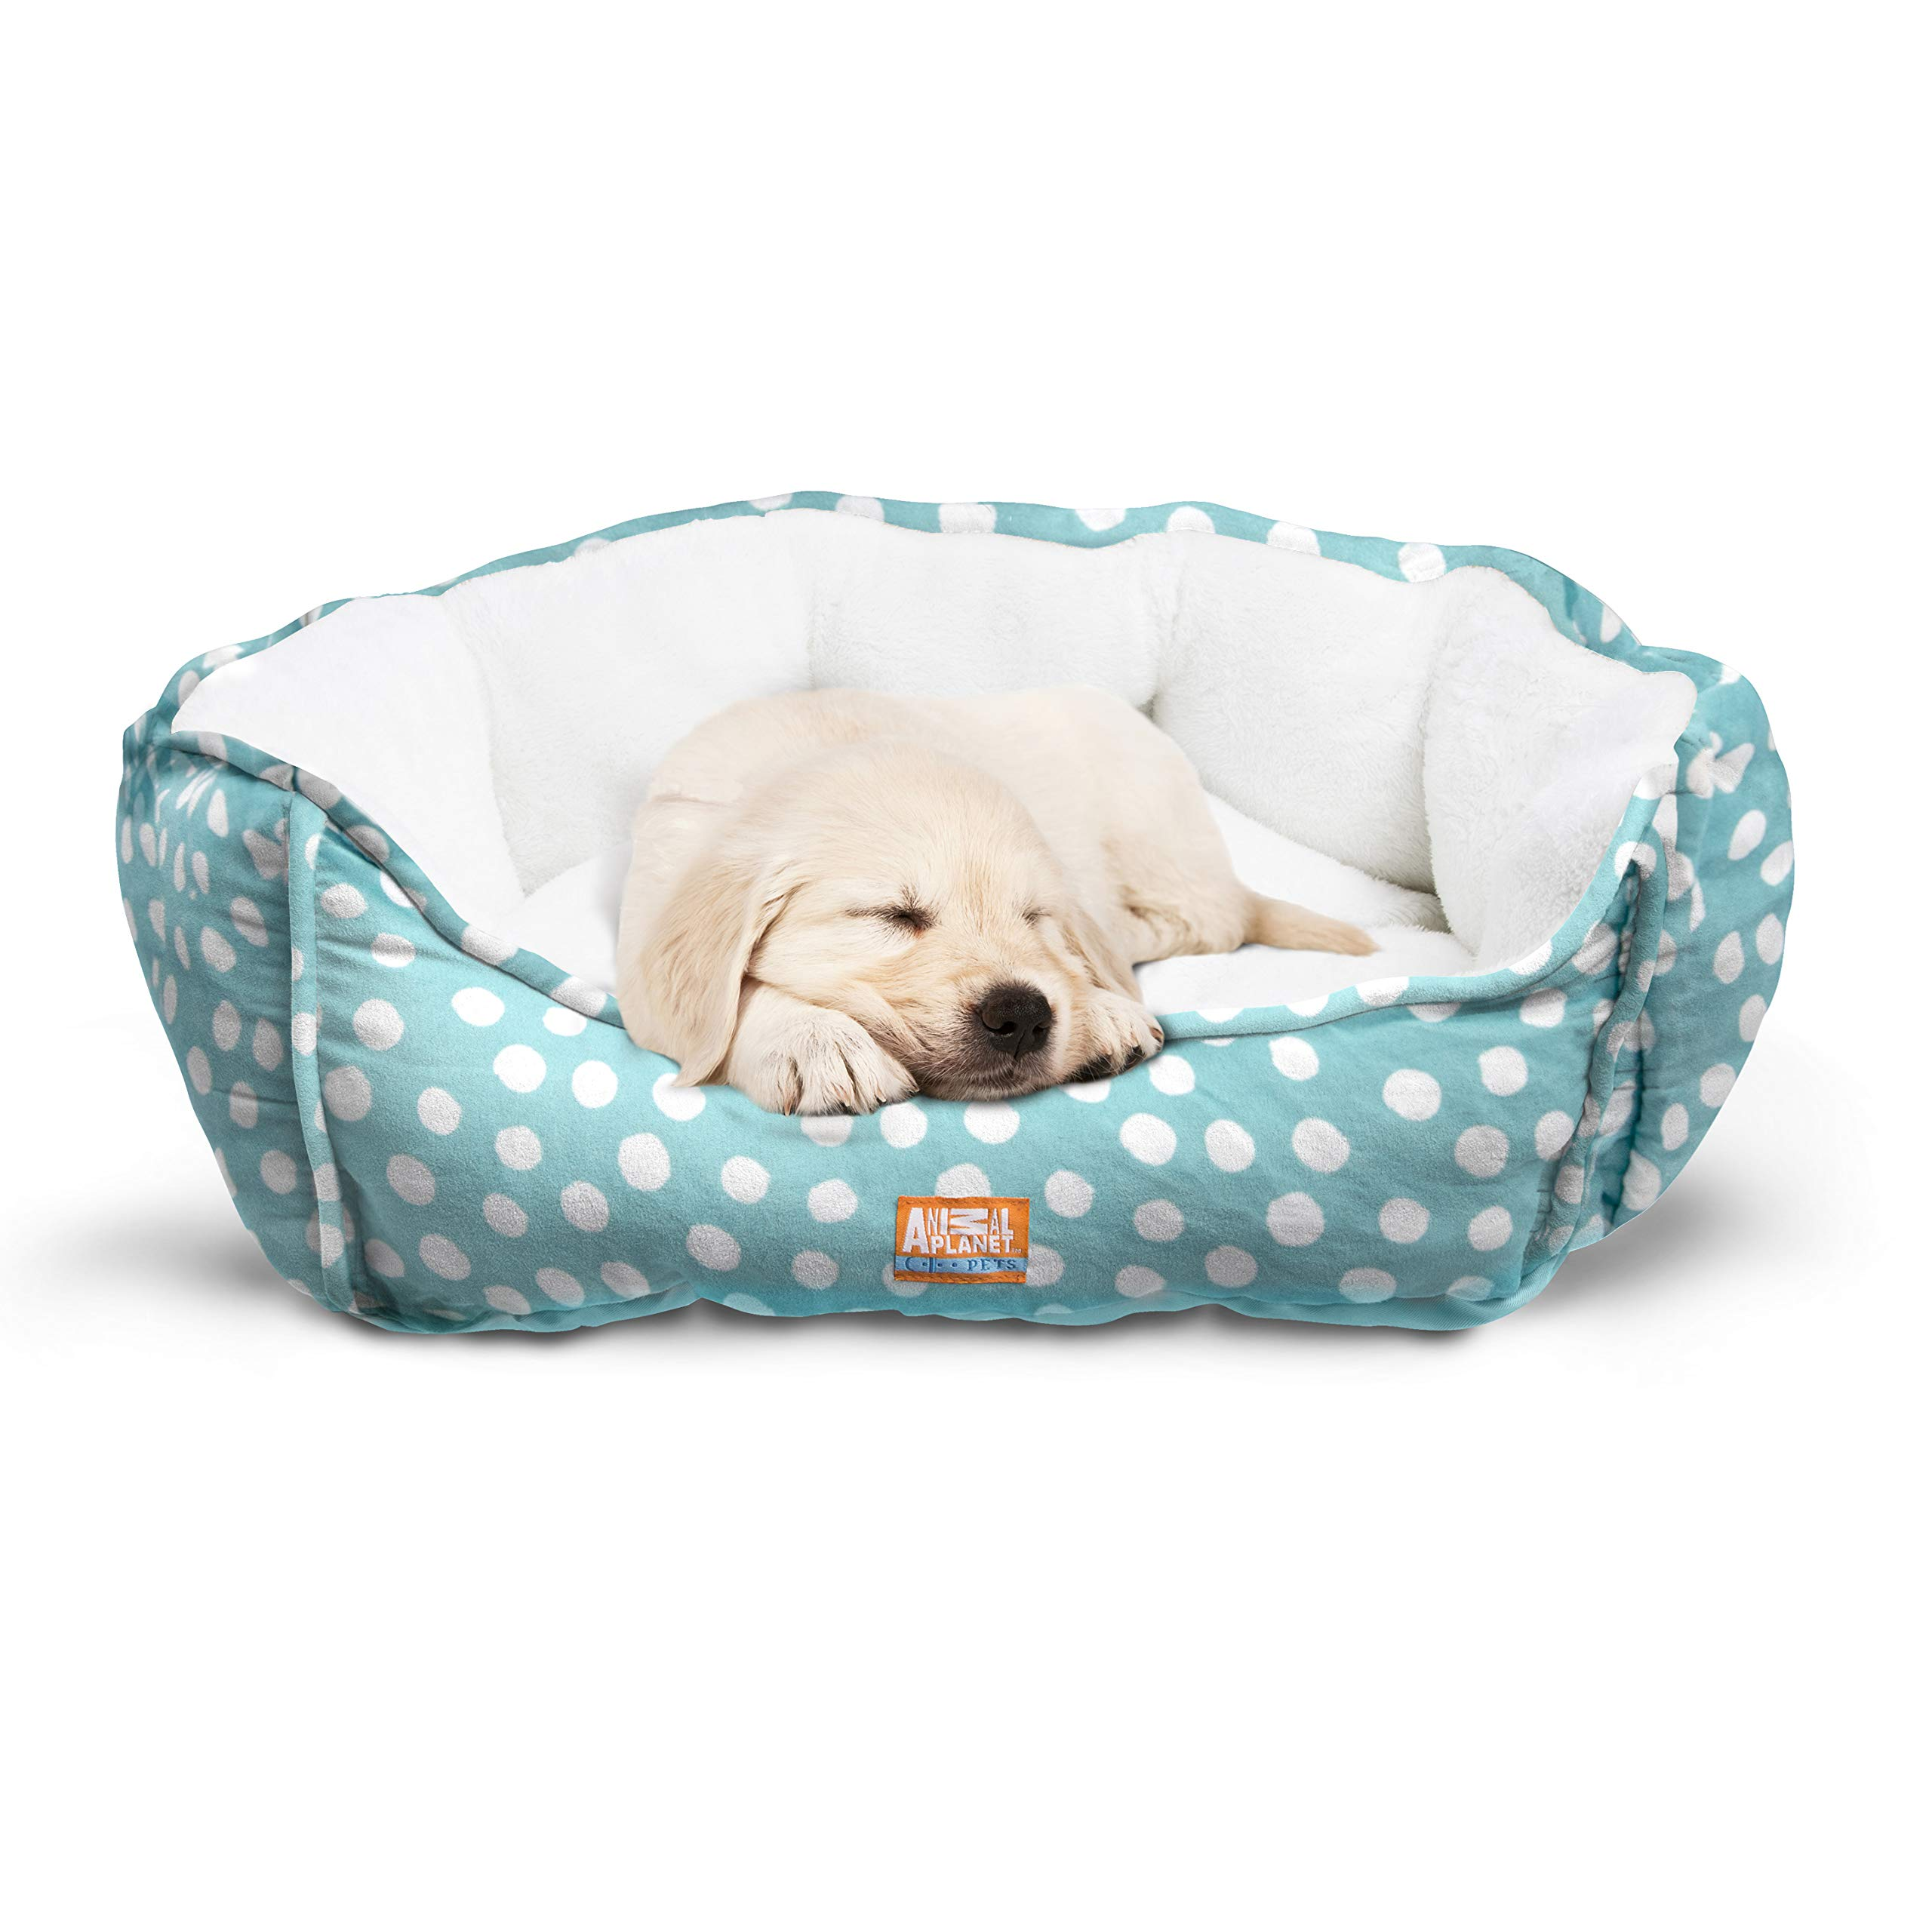 Animal Planet Round Plush Micro Suede & Sherpa Bolster Pet Bed for Dogs & Cats, Puppies, Small & Toy Breeds; Cuddly & Warm for Burrowing & Snuggling, Easy-to-Clean 24''X 17''X 9'' Aqua Polka Dot by Animal Planet